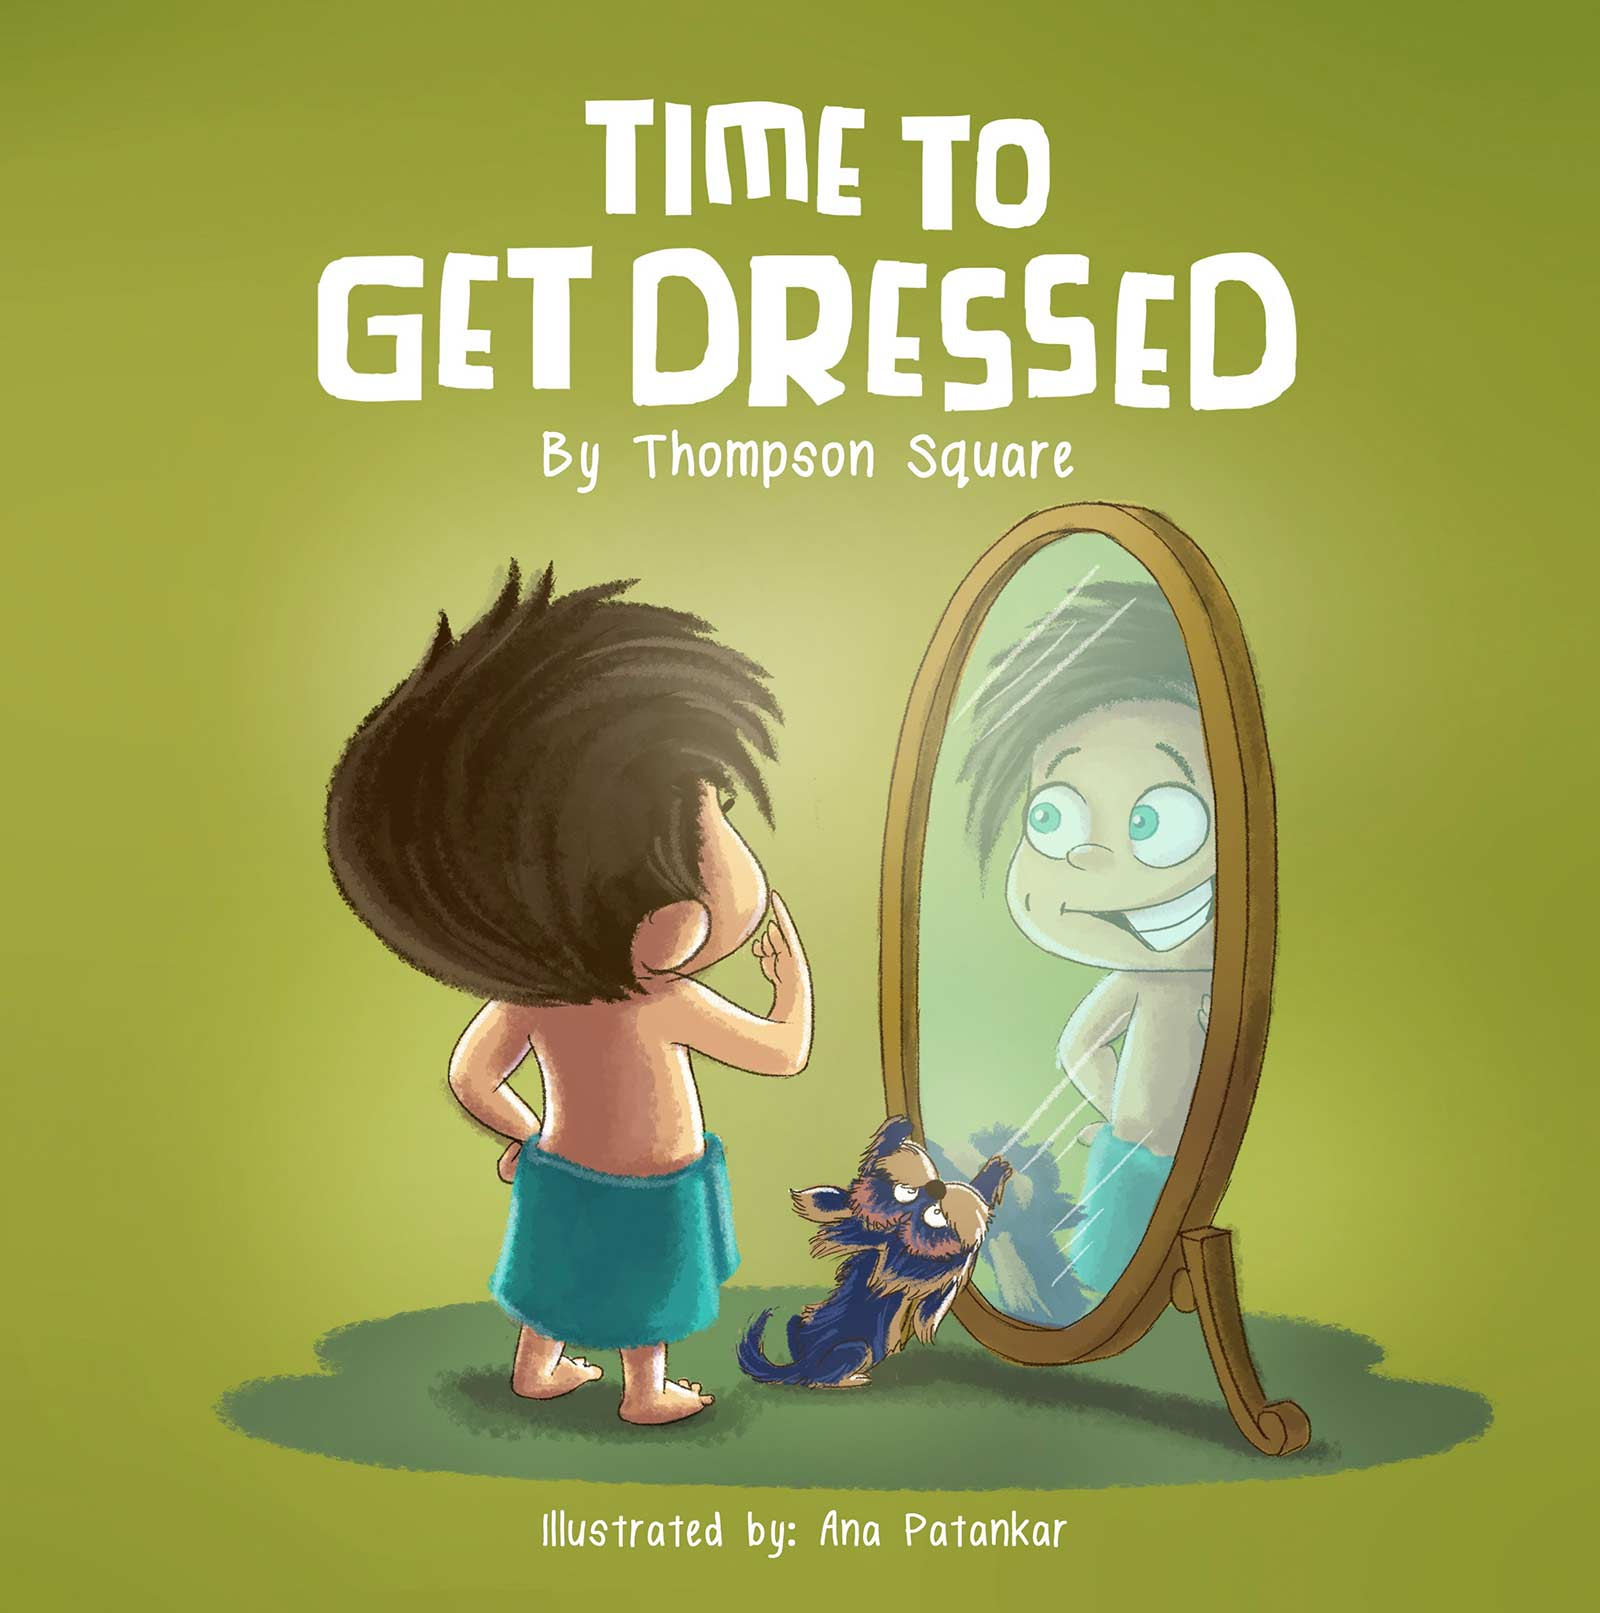 Pre-order Thompson Square's TIME TO GET DRESSED Today!